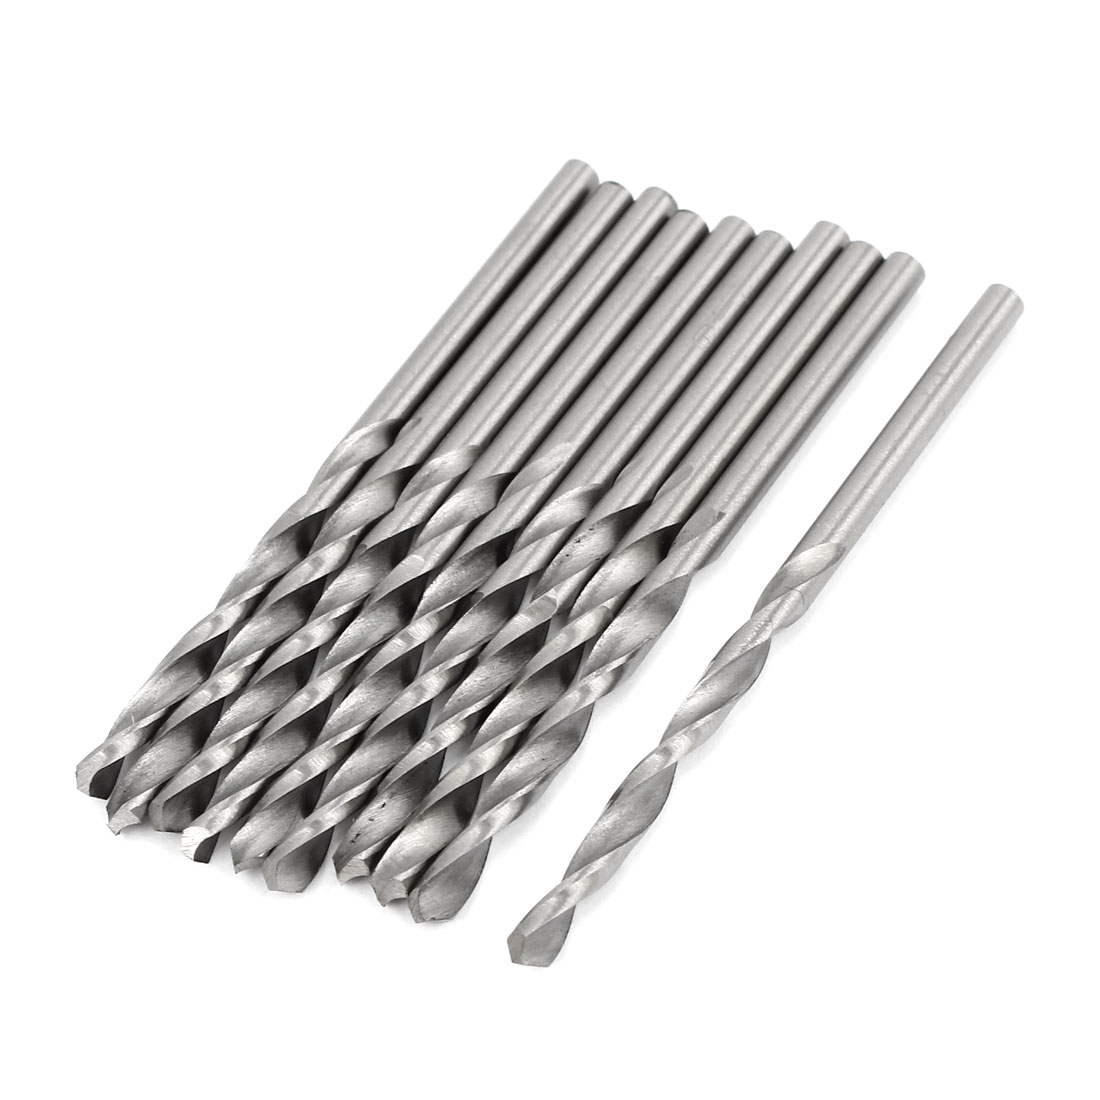 High Speed Steel 3.5mm Dia Split Point 70mm Long Twist Drill Bits 10 Pcs